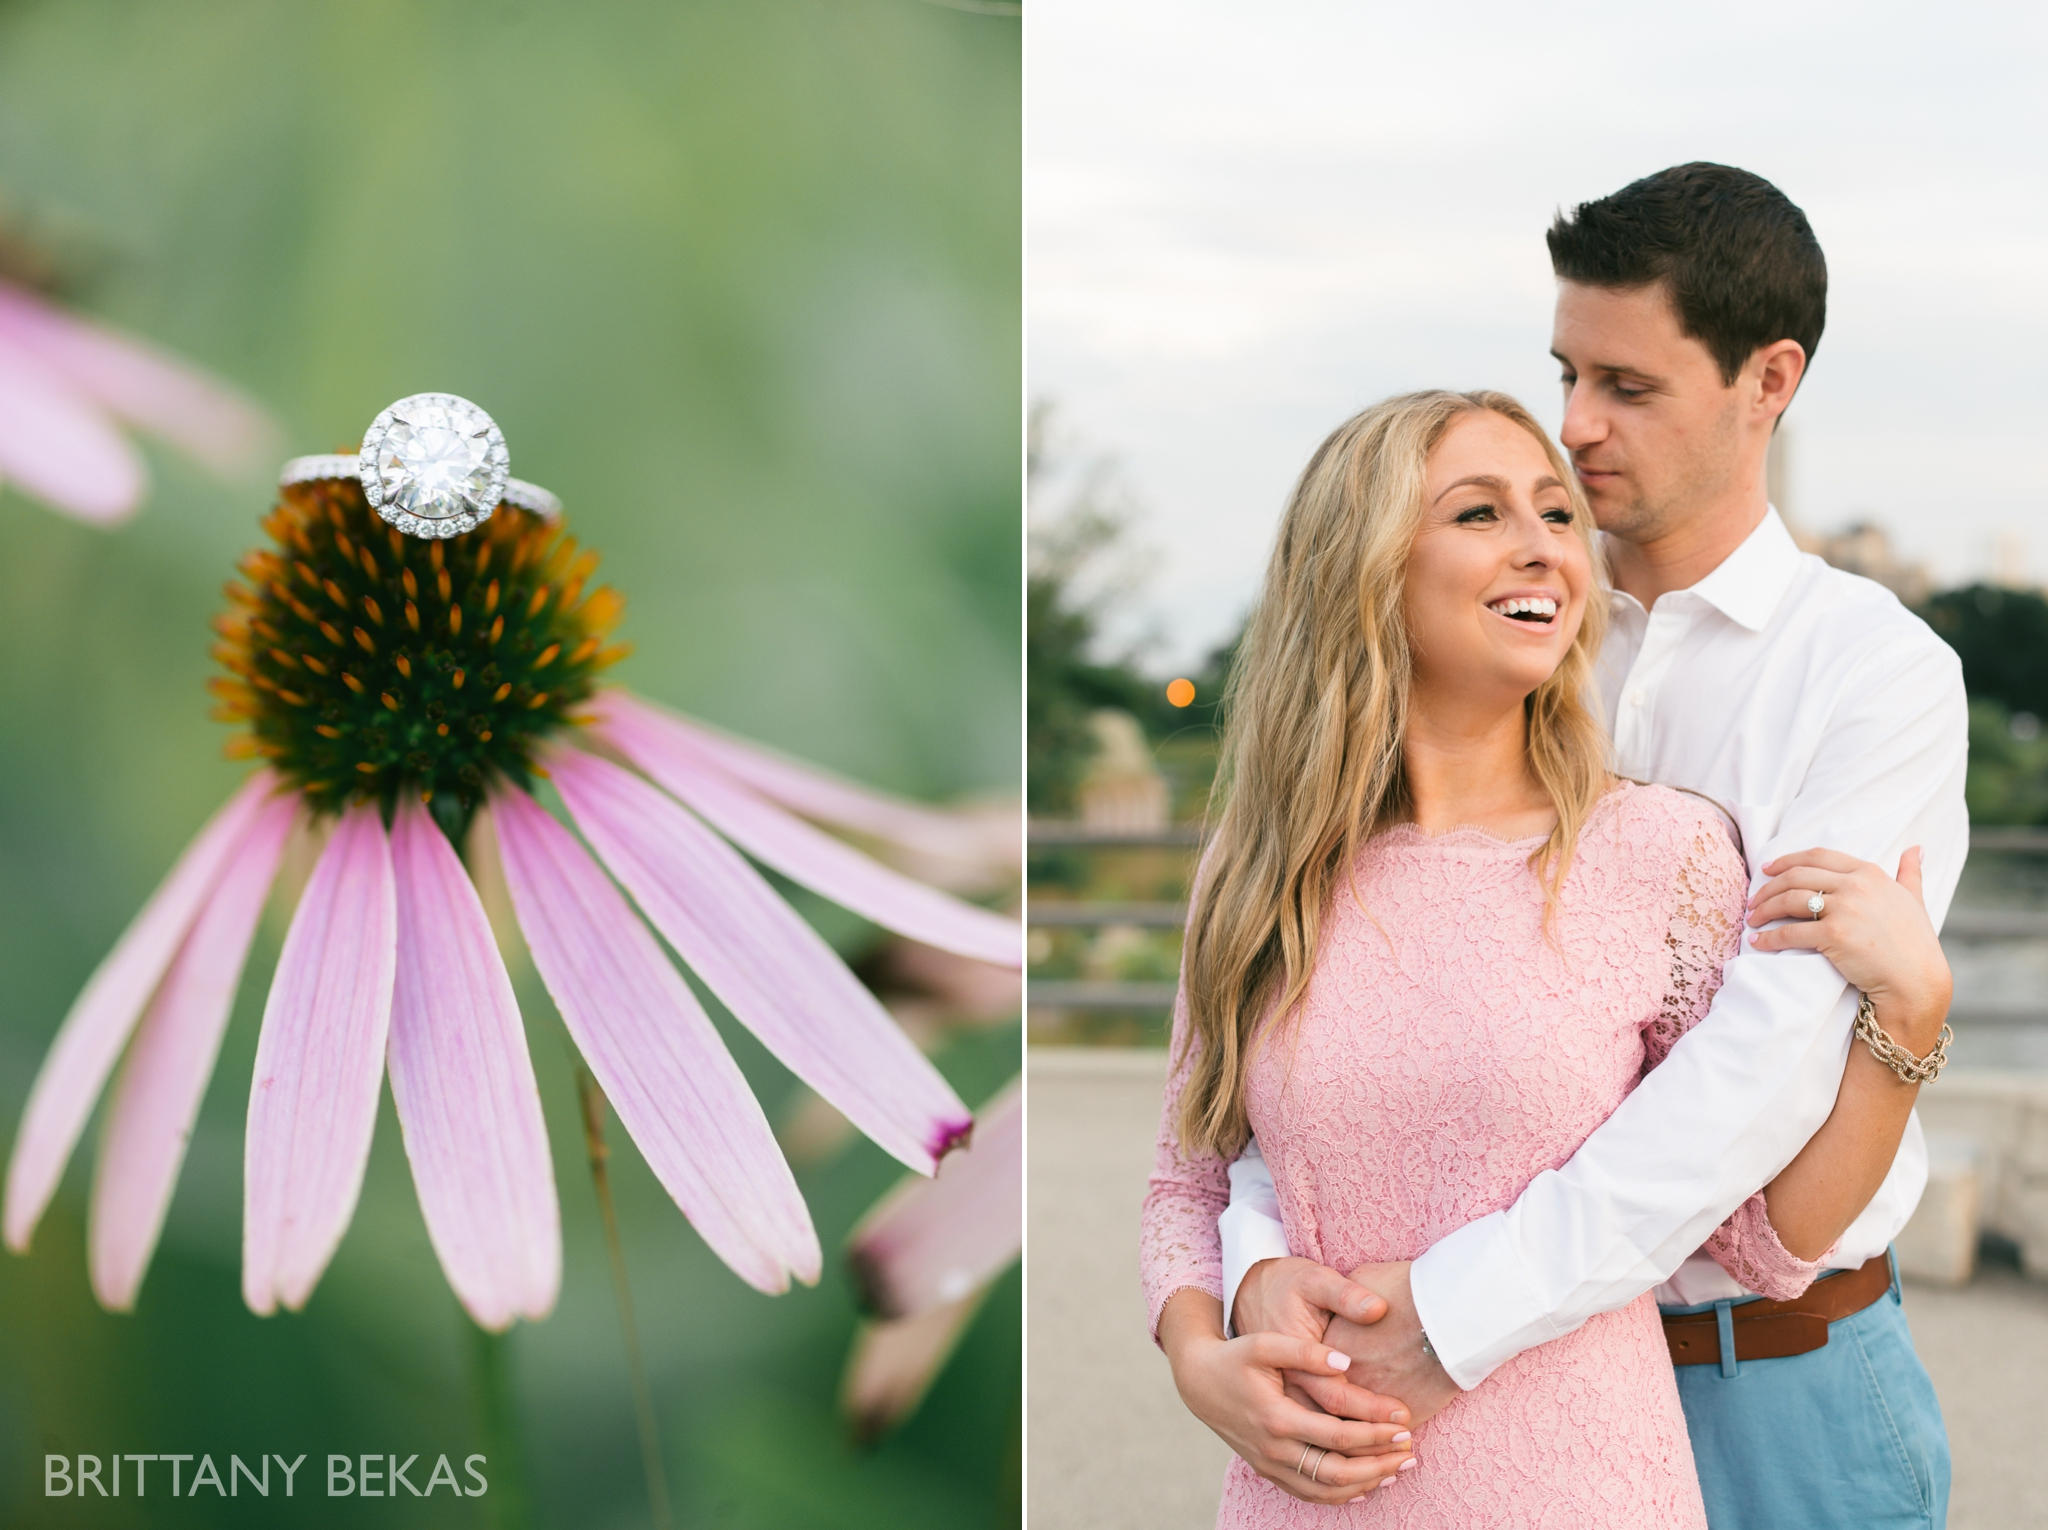 lincoln-park-chicago-engagement-photos-brittany-bekas-photography_0017